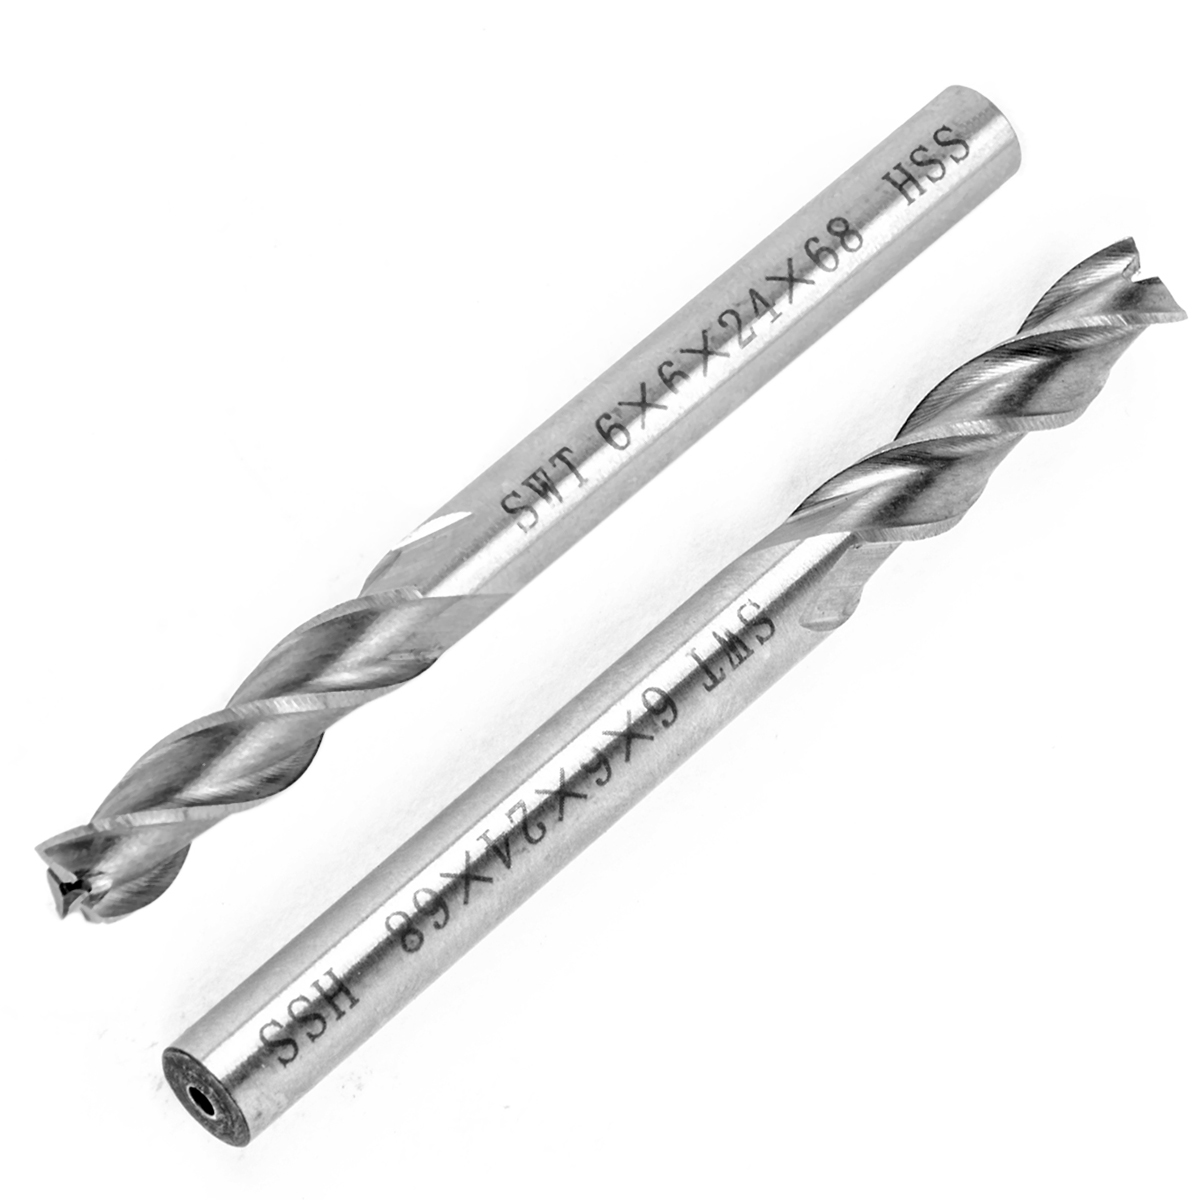 1pc 3 Flutes HSS End Mill 6mm Shank MIlling Cutter Extended CNC Bit Durable Tool For Woodworking